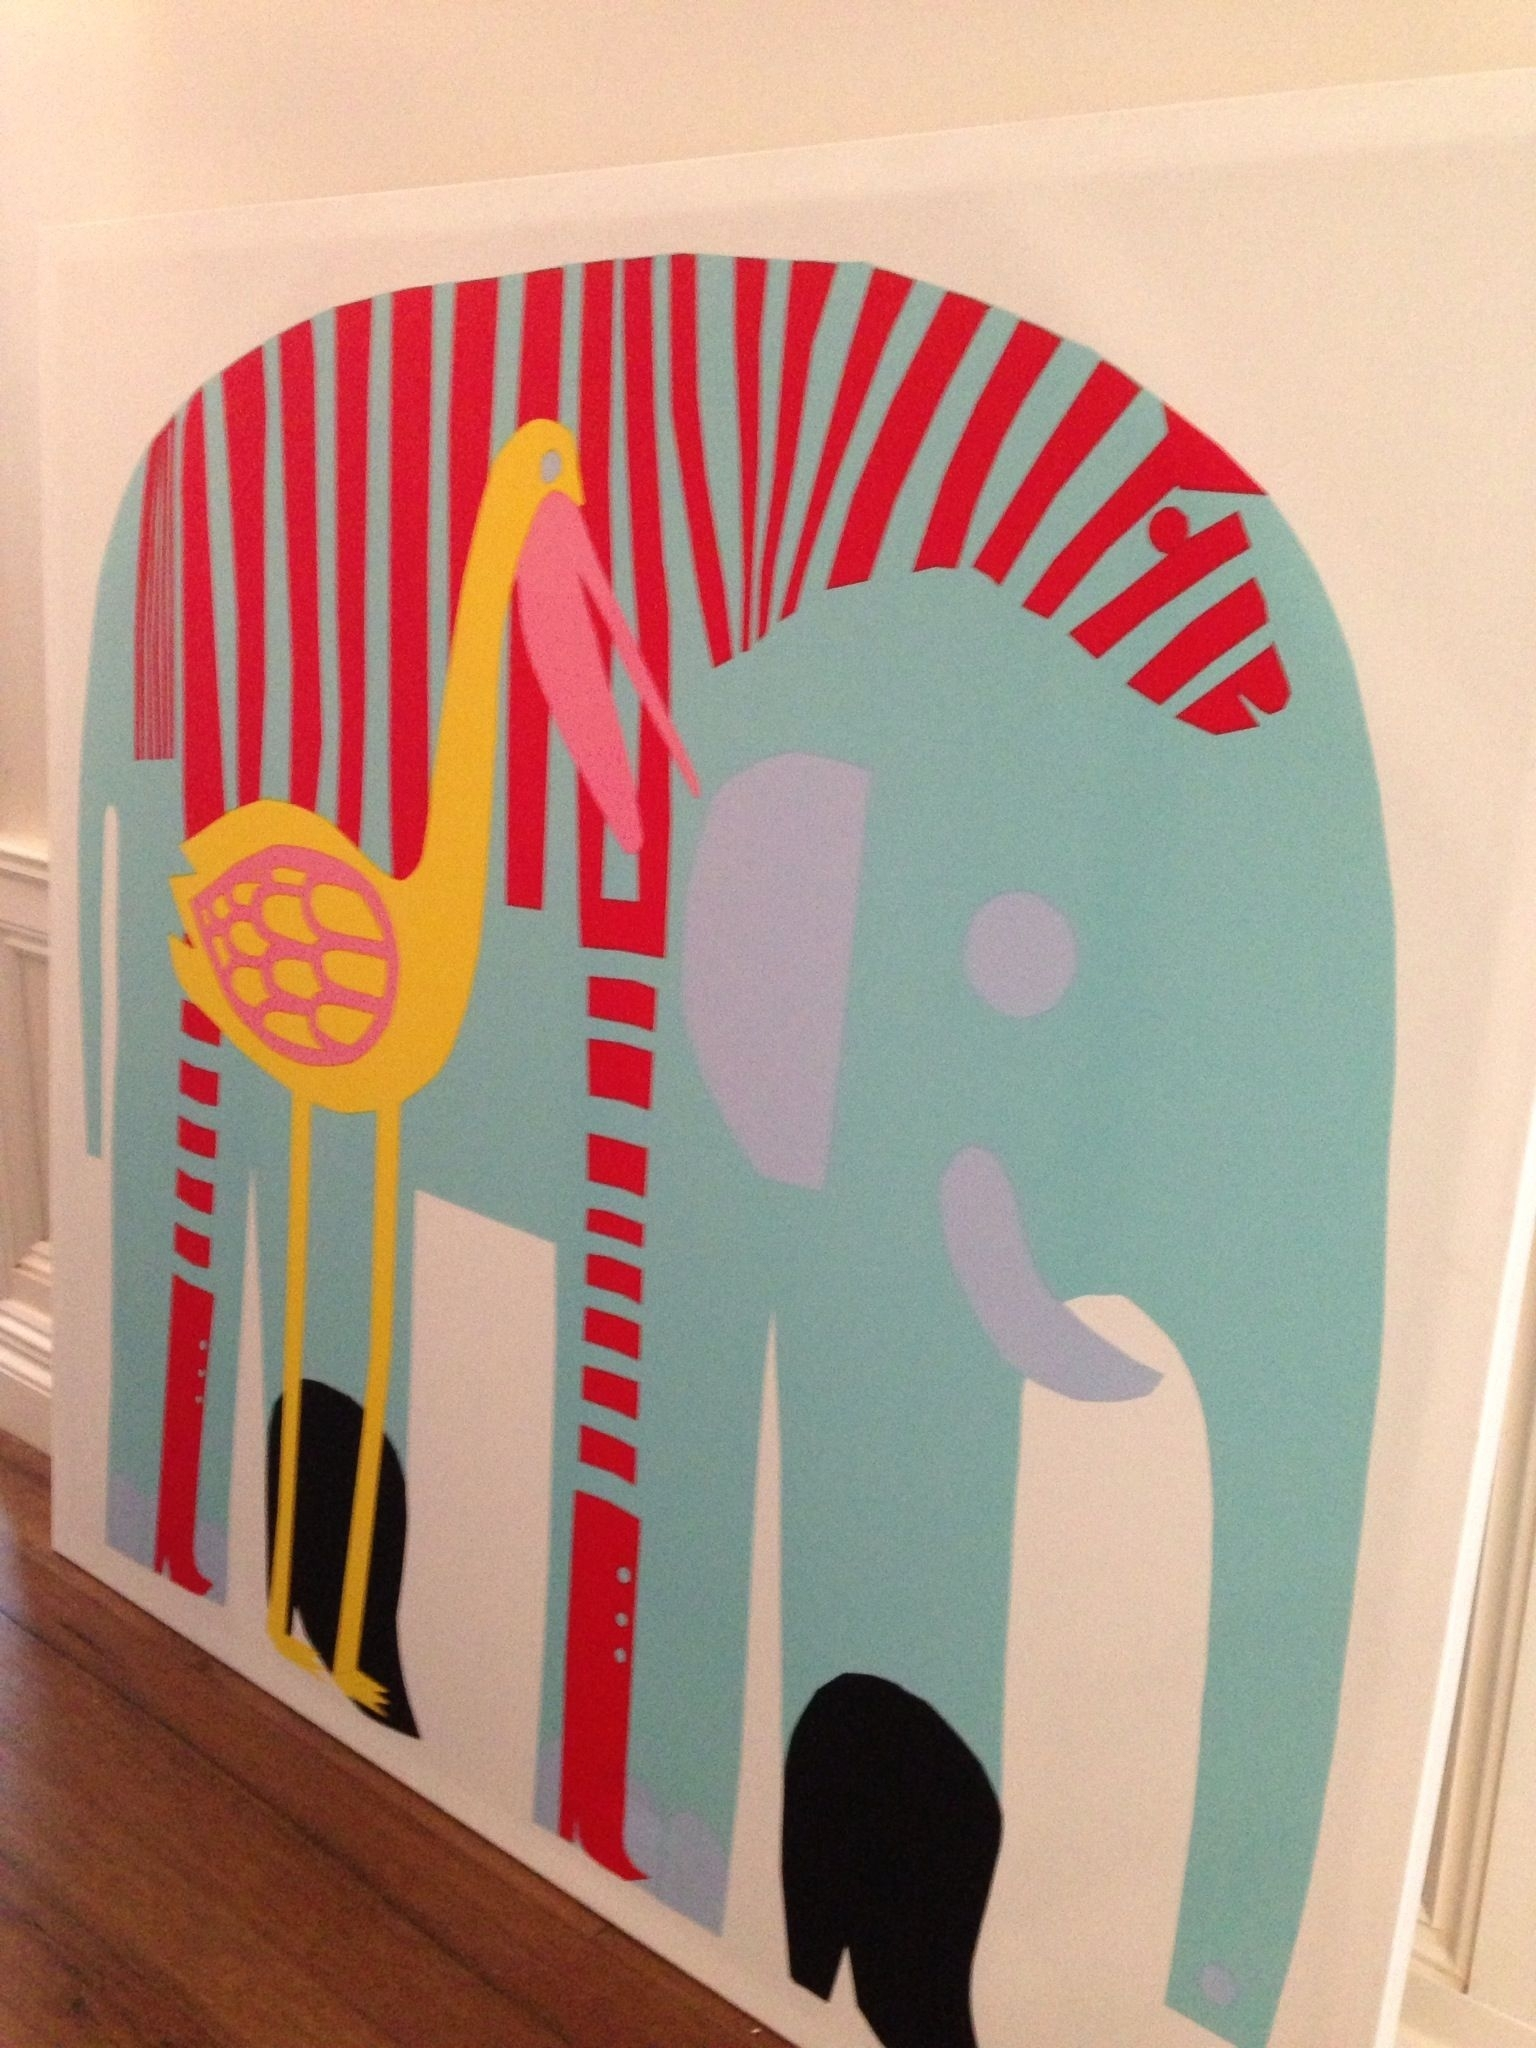 Marimekko Elephant Print For The Kids' Room (View 4 of 15)